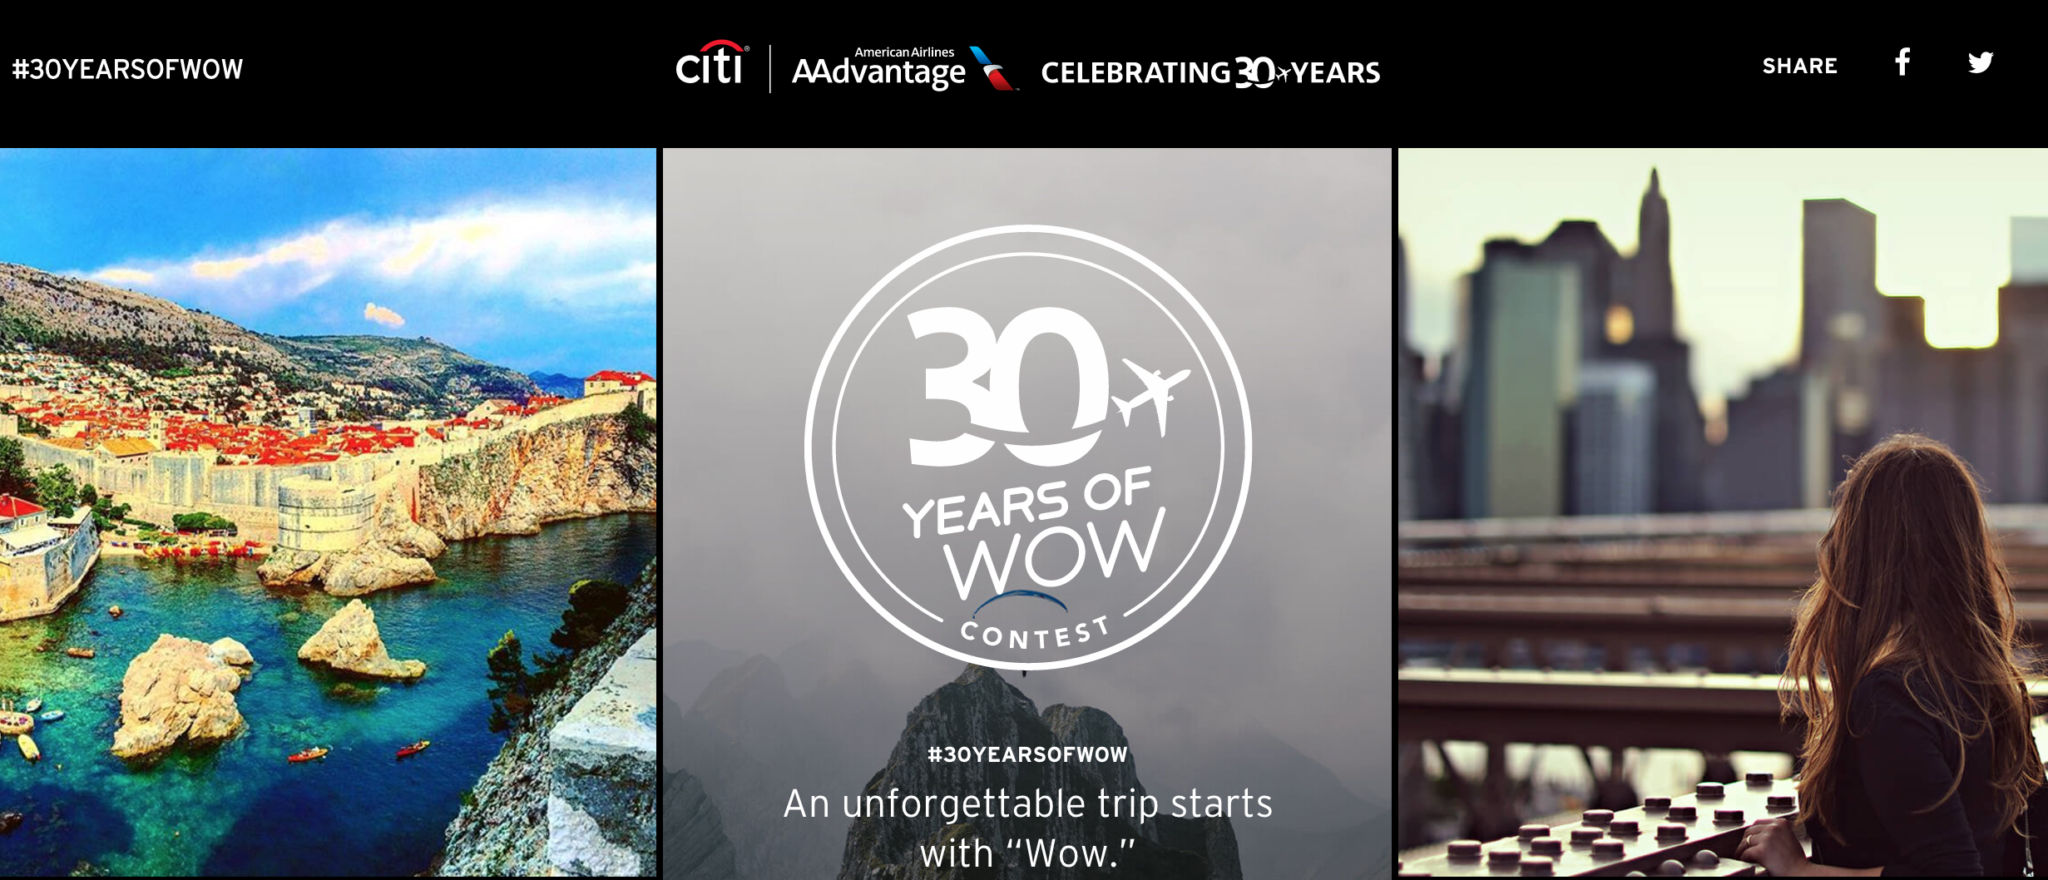 Citi / AAdvantage 30 Years of Wow Contest